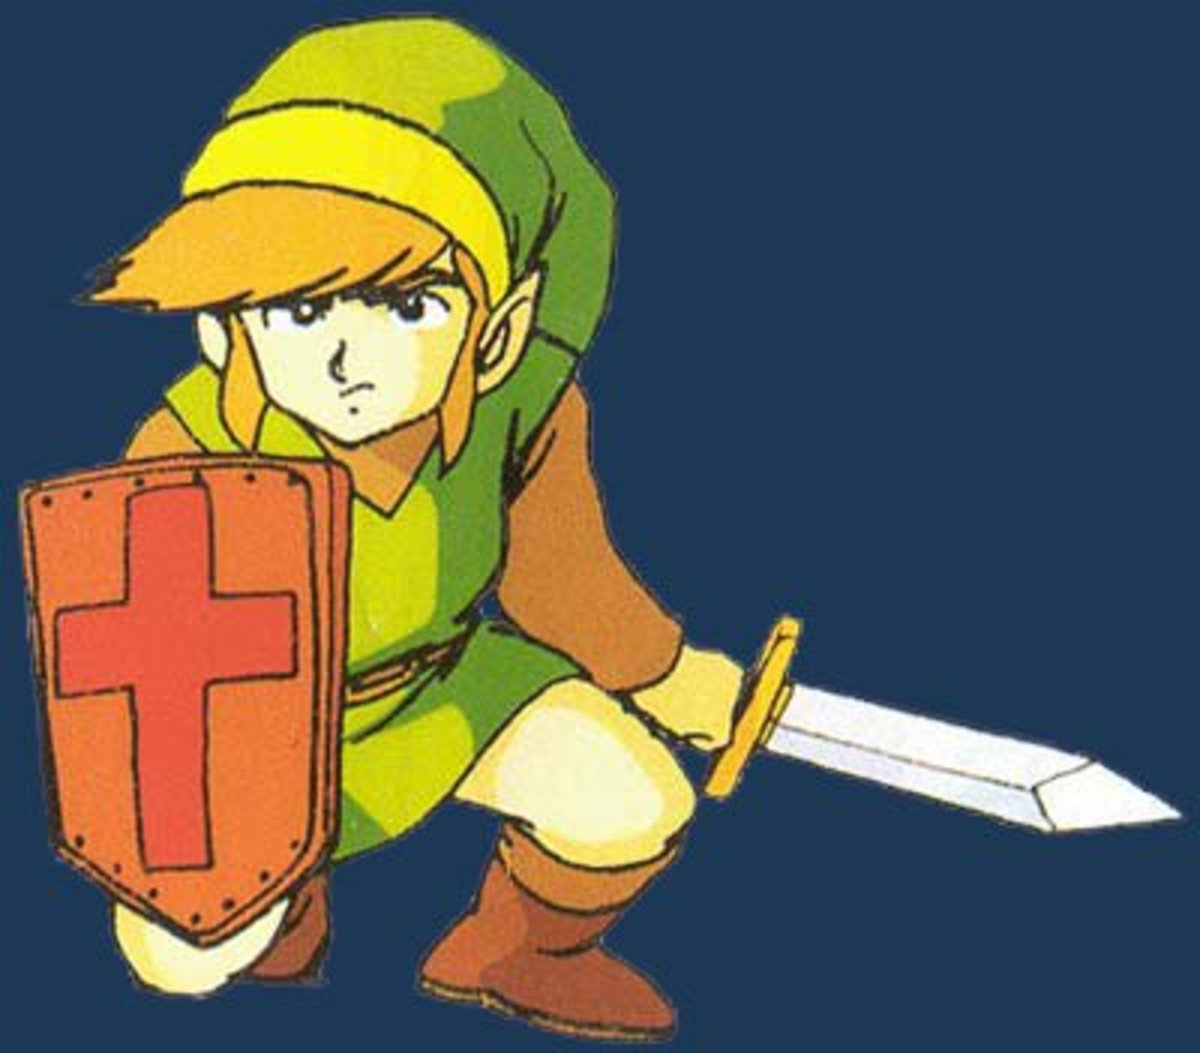 Promotional artwork of Link holding the Magic Shield.